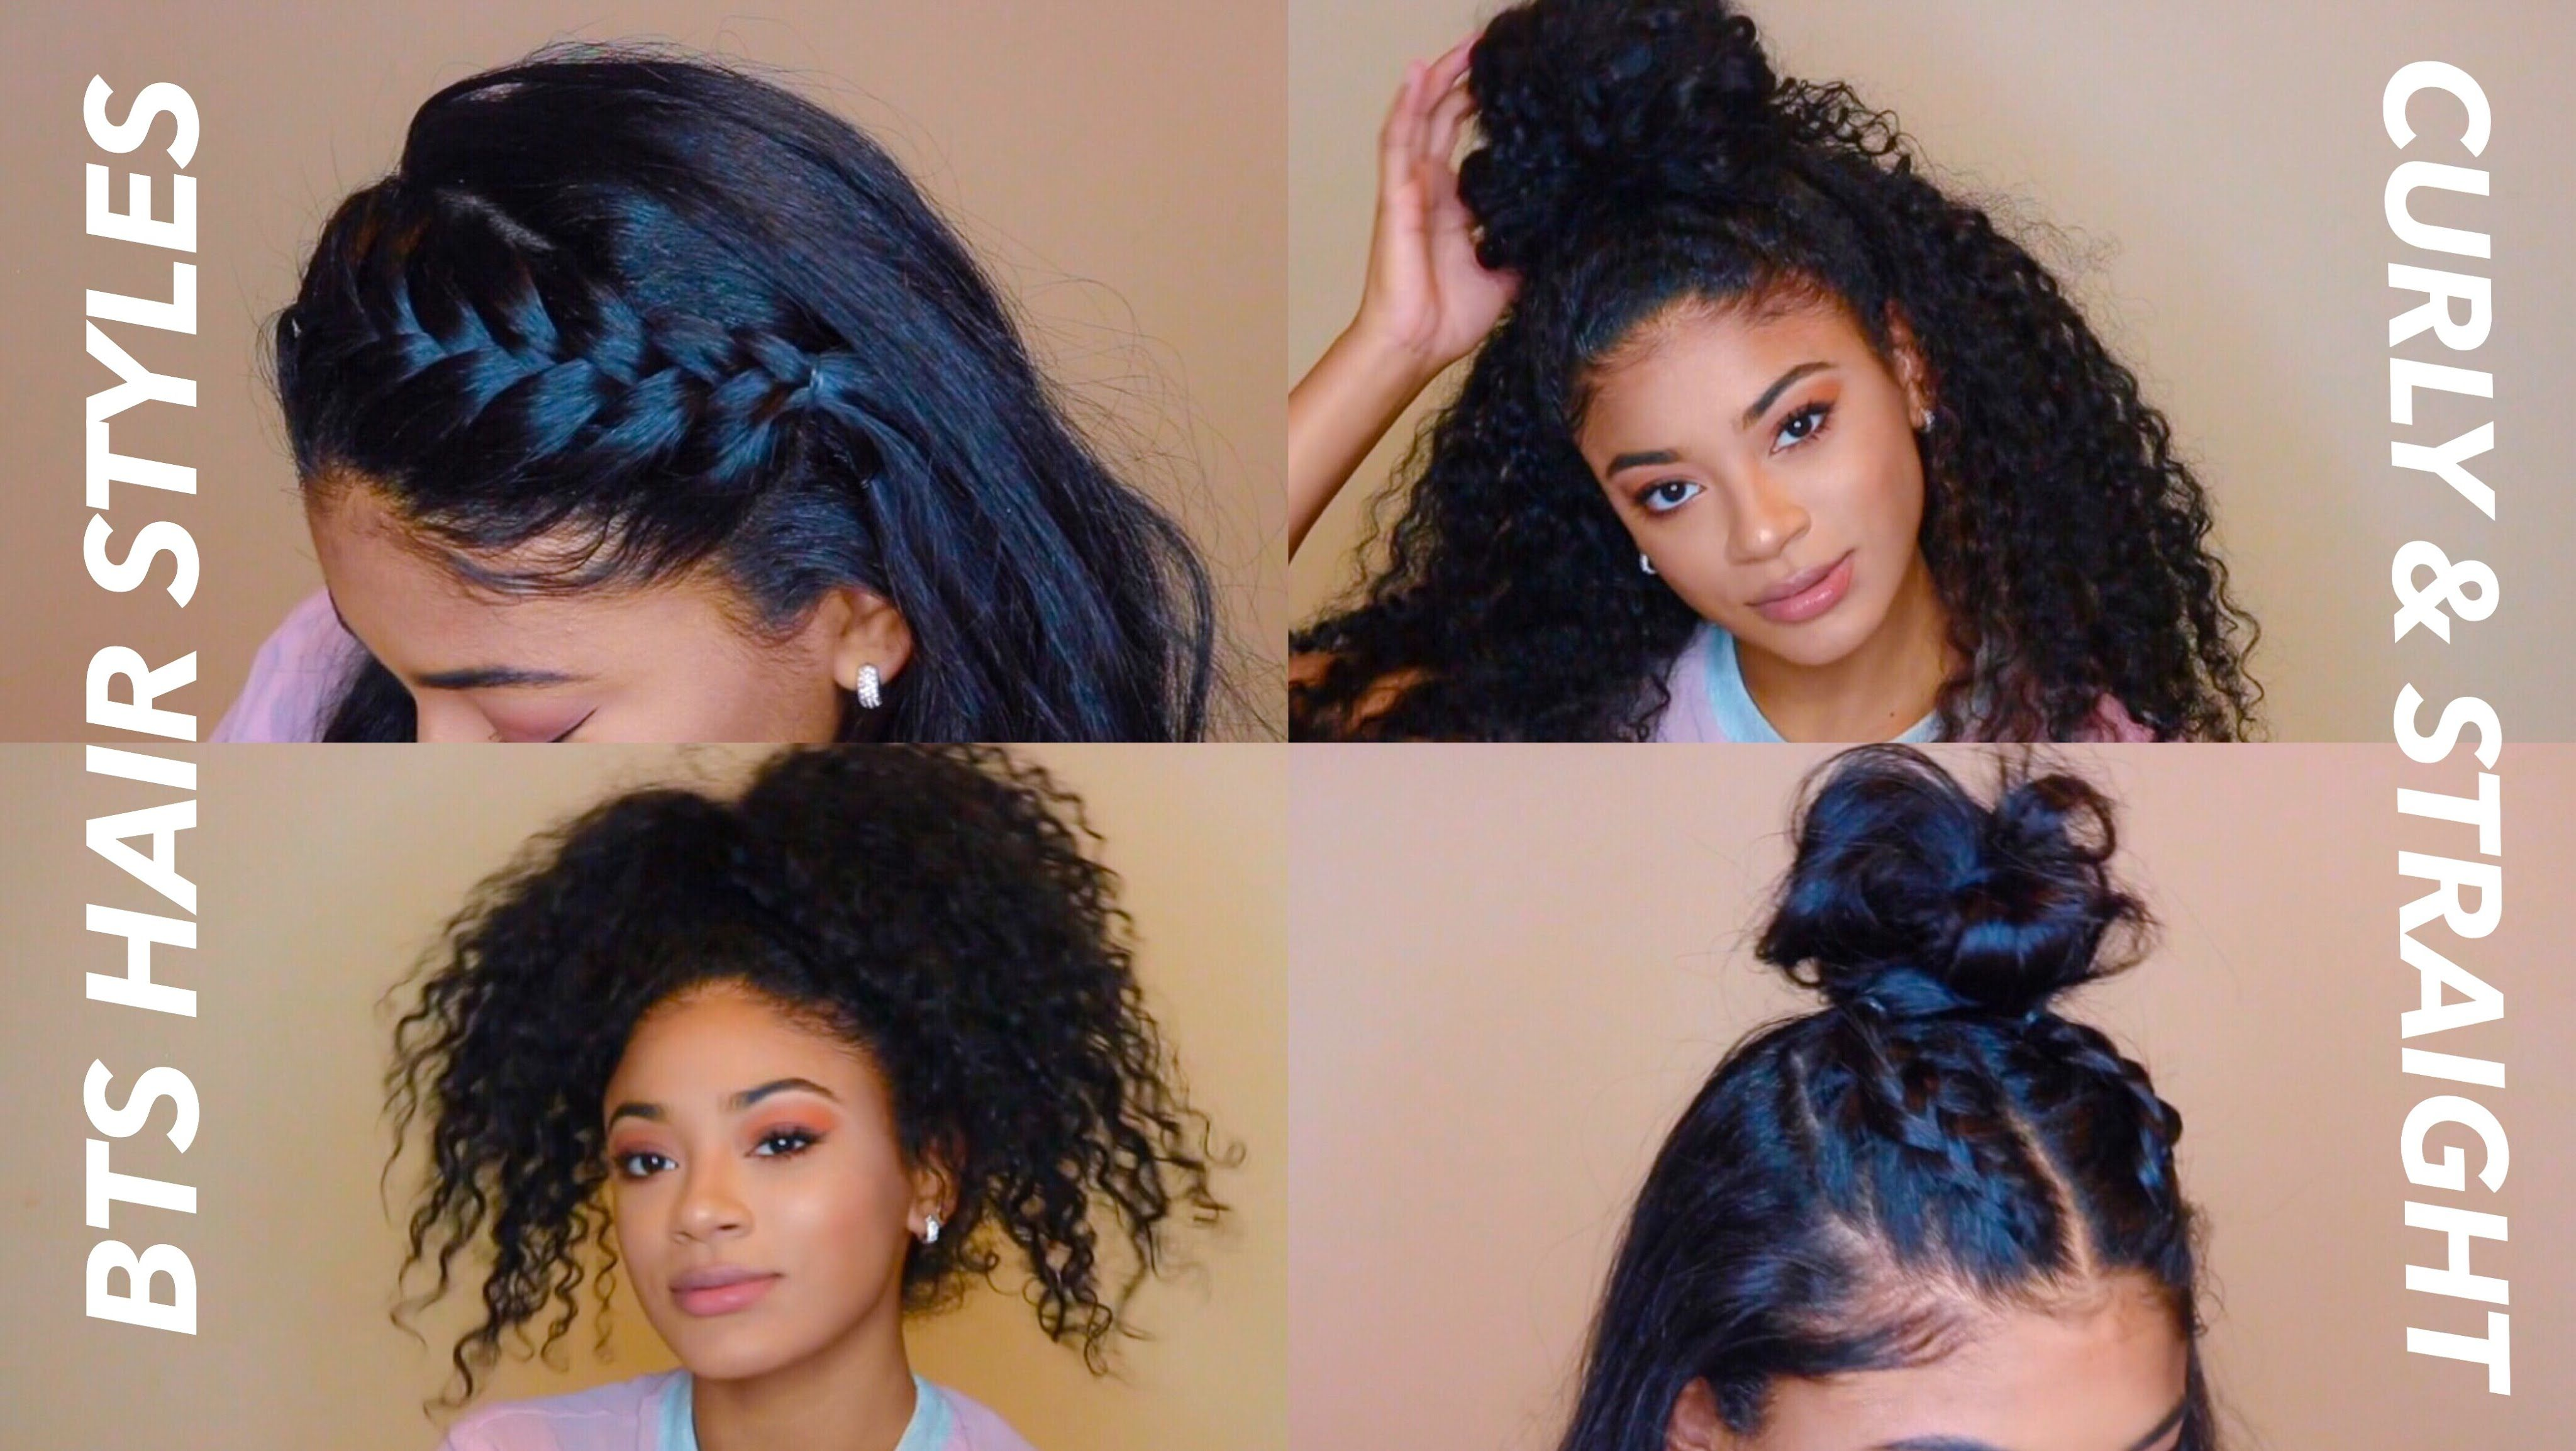 Hairstyles For Curly Hair Jasmine Brown Brown Curly Hairstyles Hairstylesforcurlyhair Jasmine Hair Styles Straight Hairstyles Curly Hair Styles